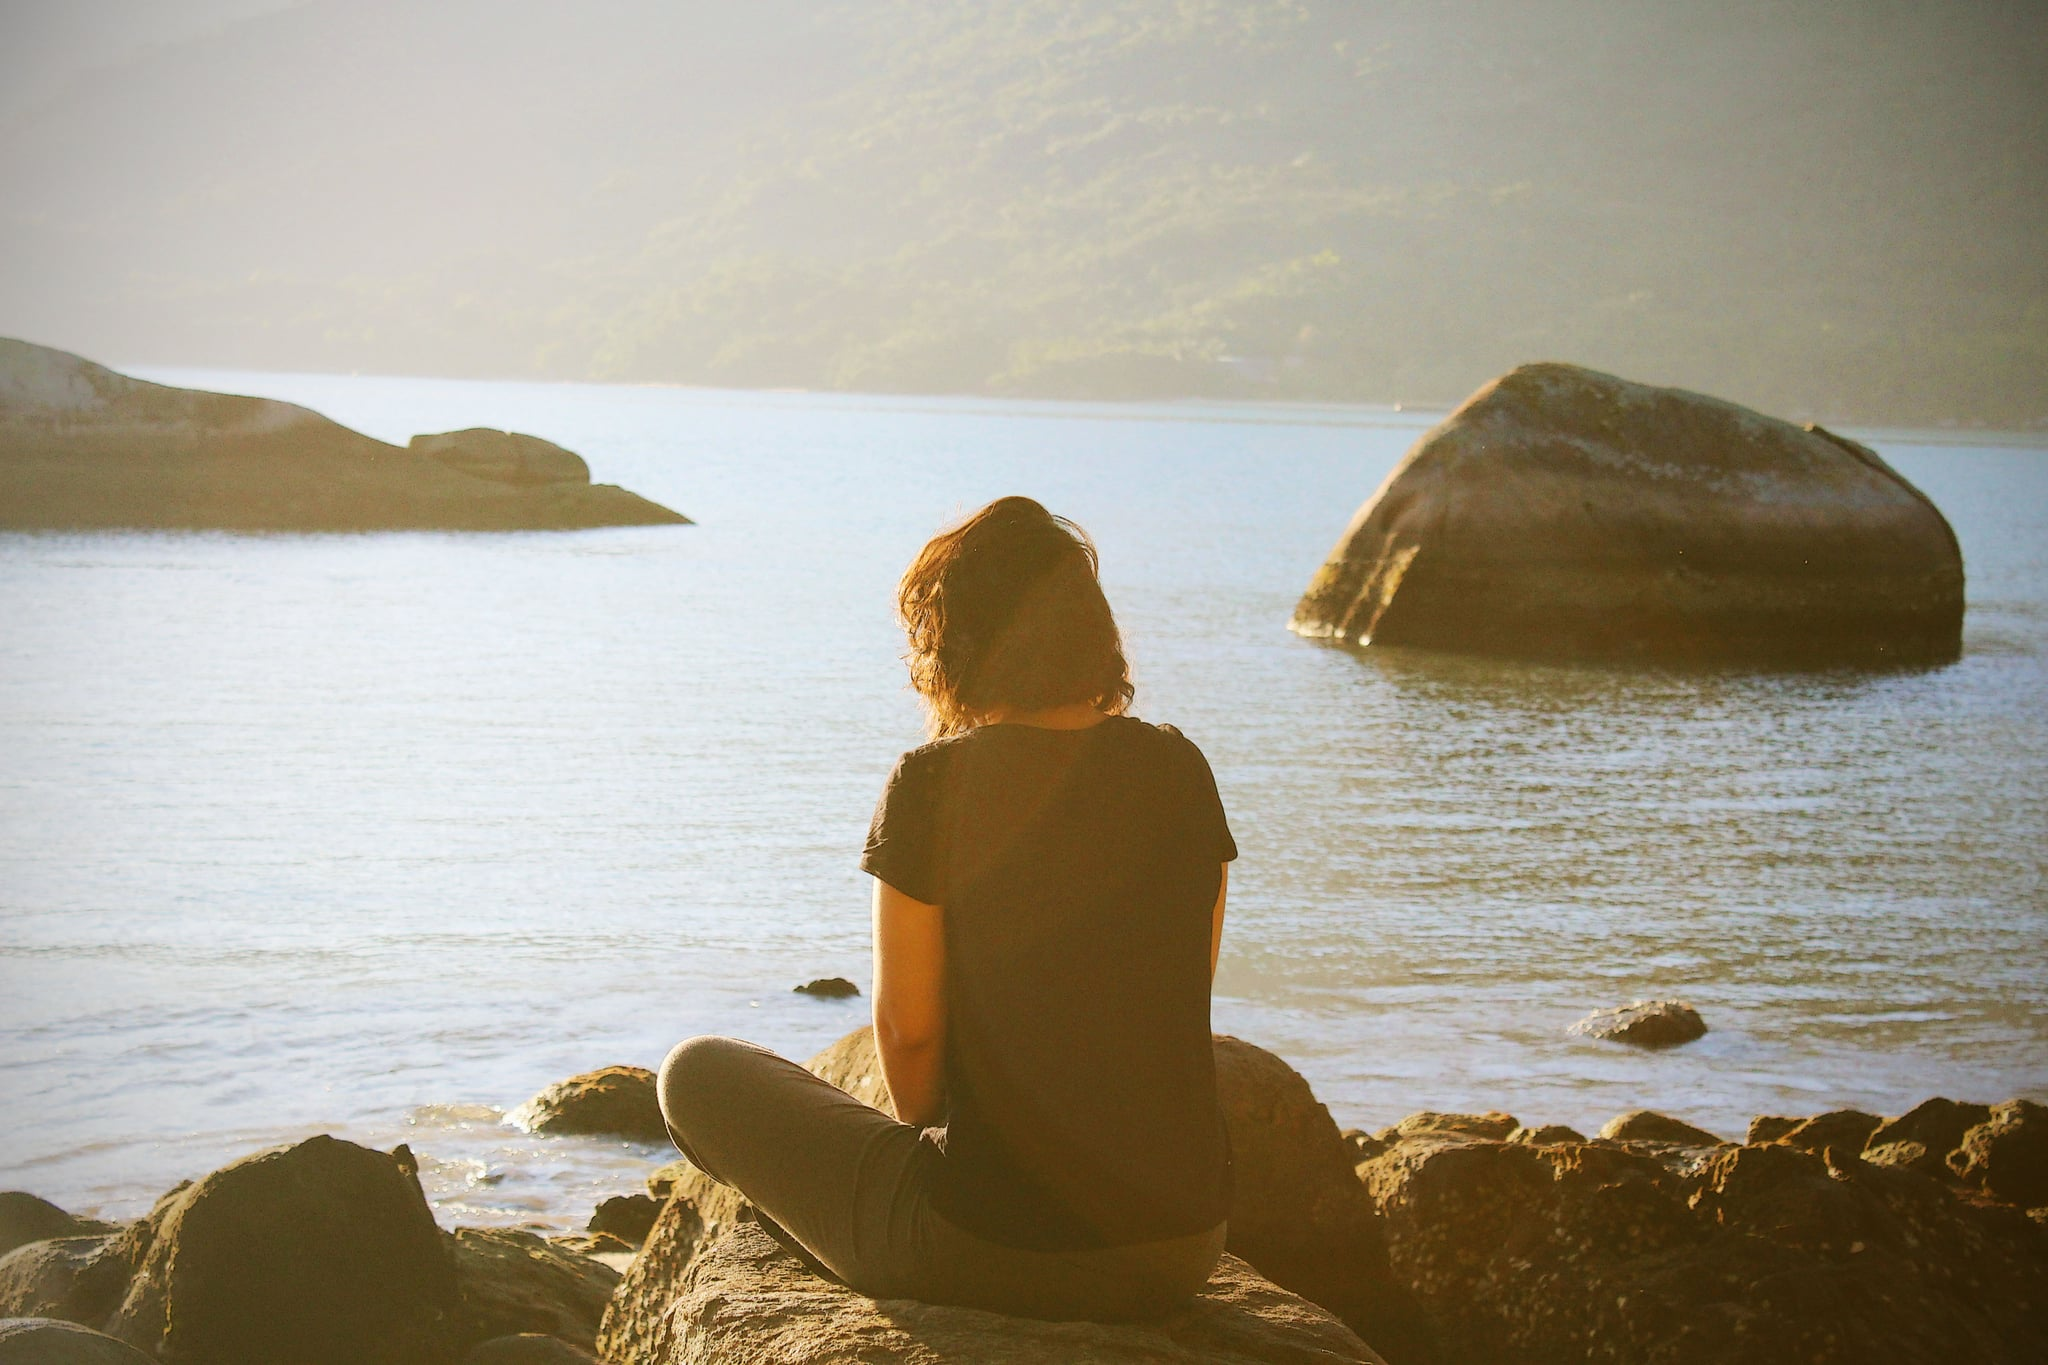 A New Study Shows Meditation Has Long-Term Benefits of Up to 7 Years